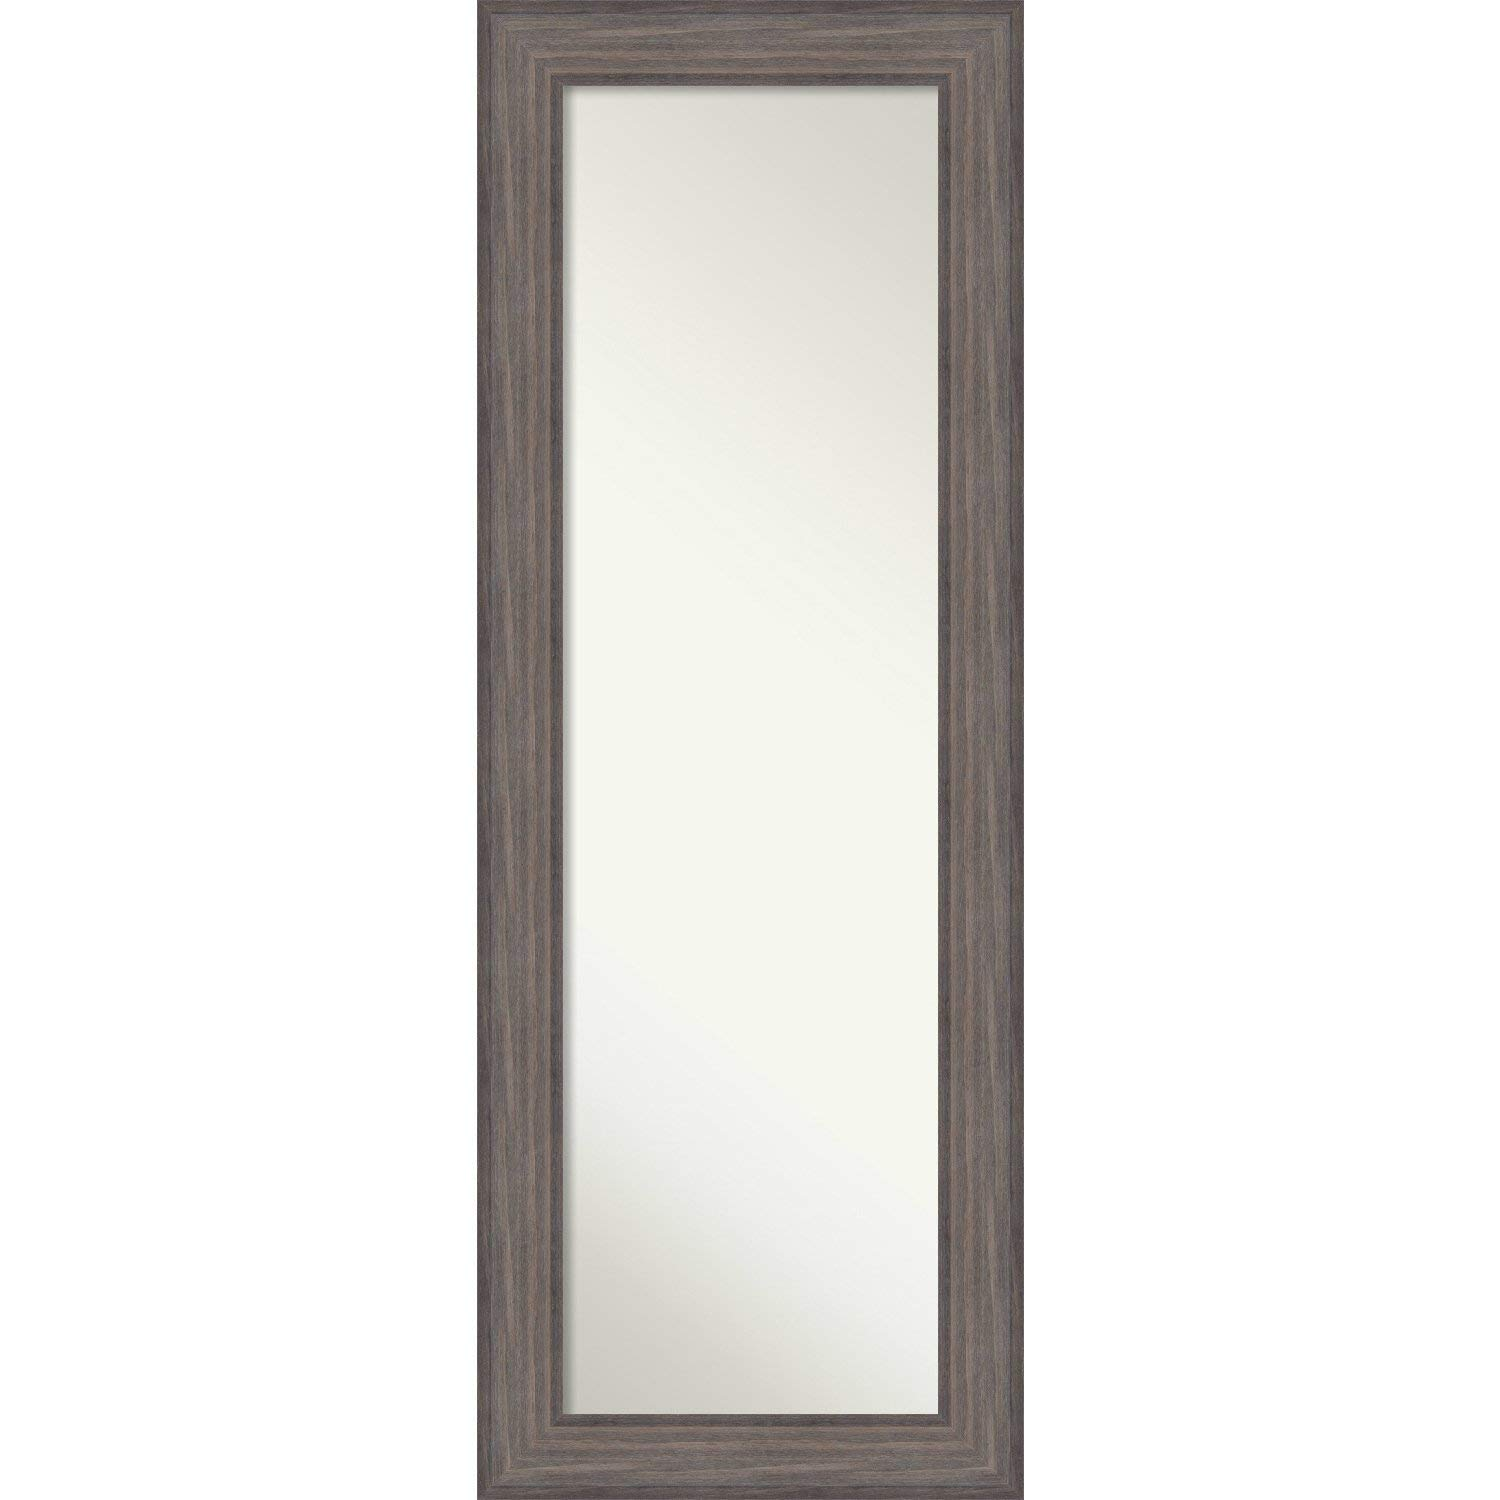 Over The Door Mirror Walmart.Cheap Door Mirror Walmart Find Door Mirror Walmart Deals On